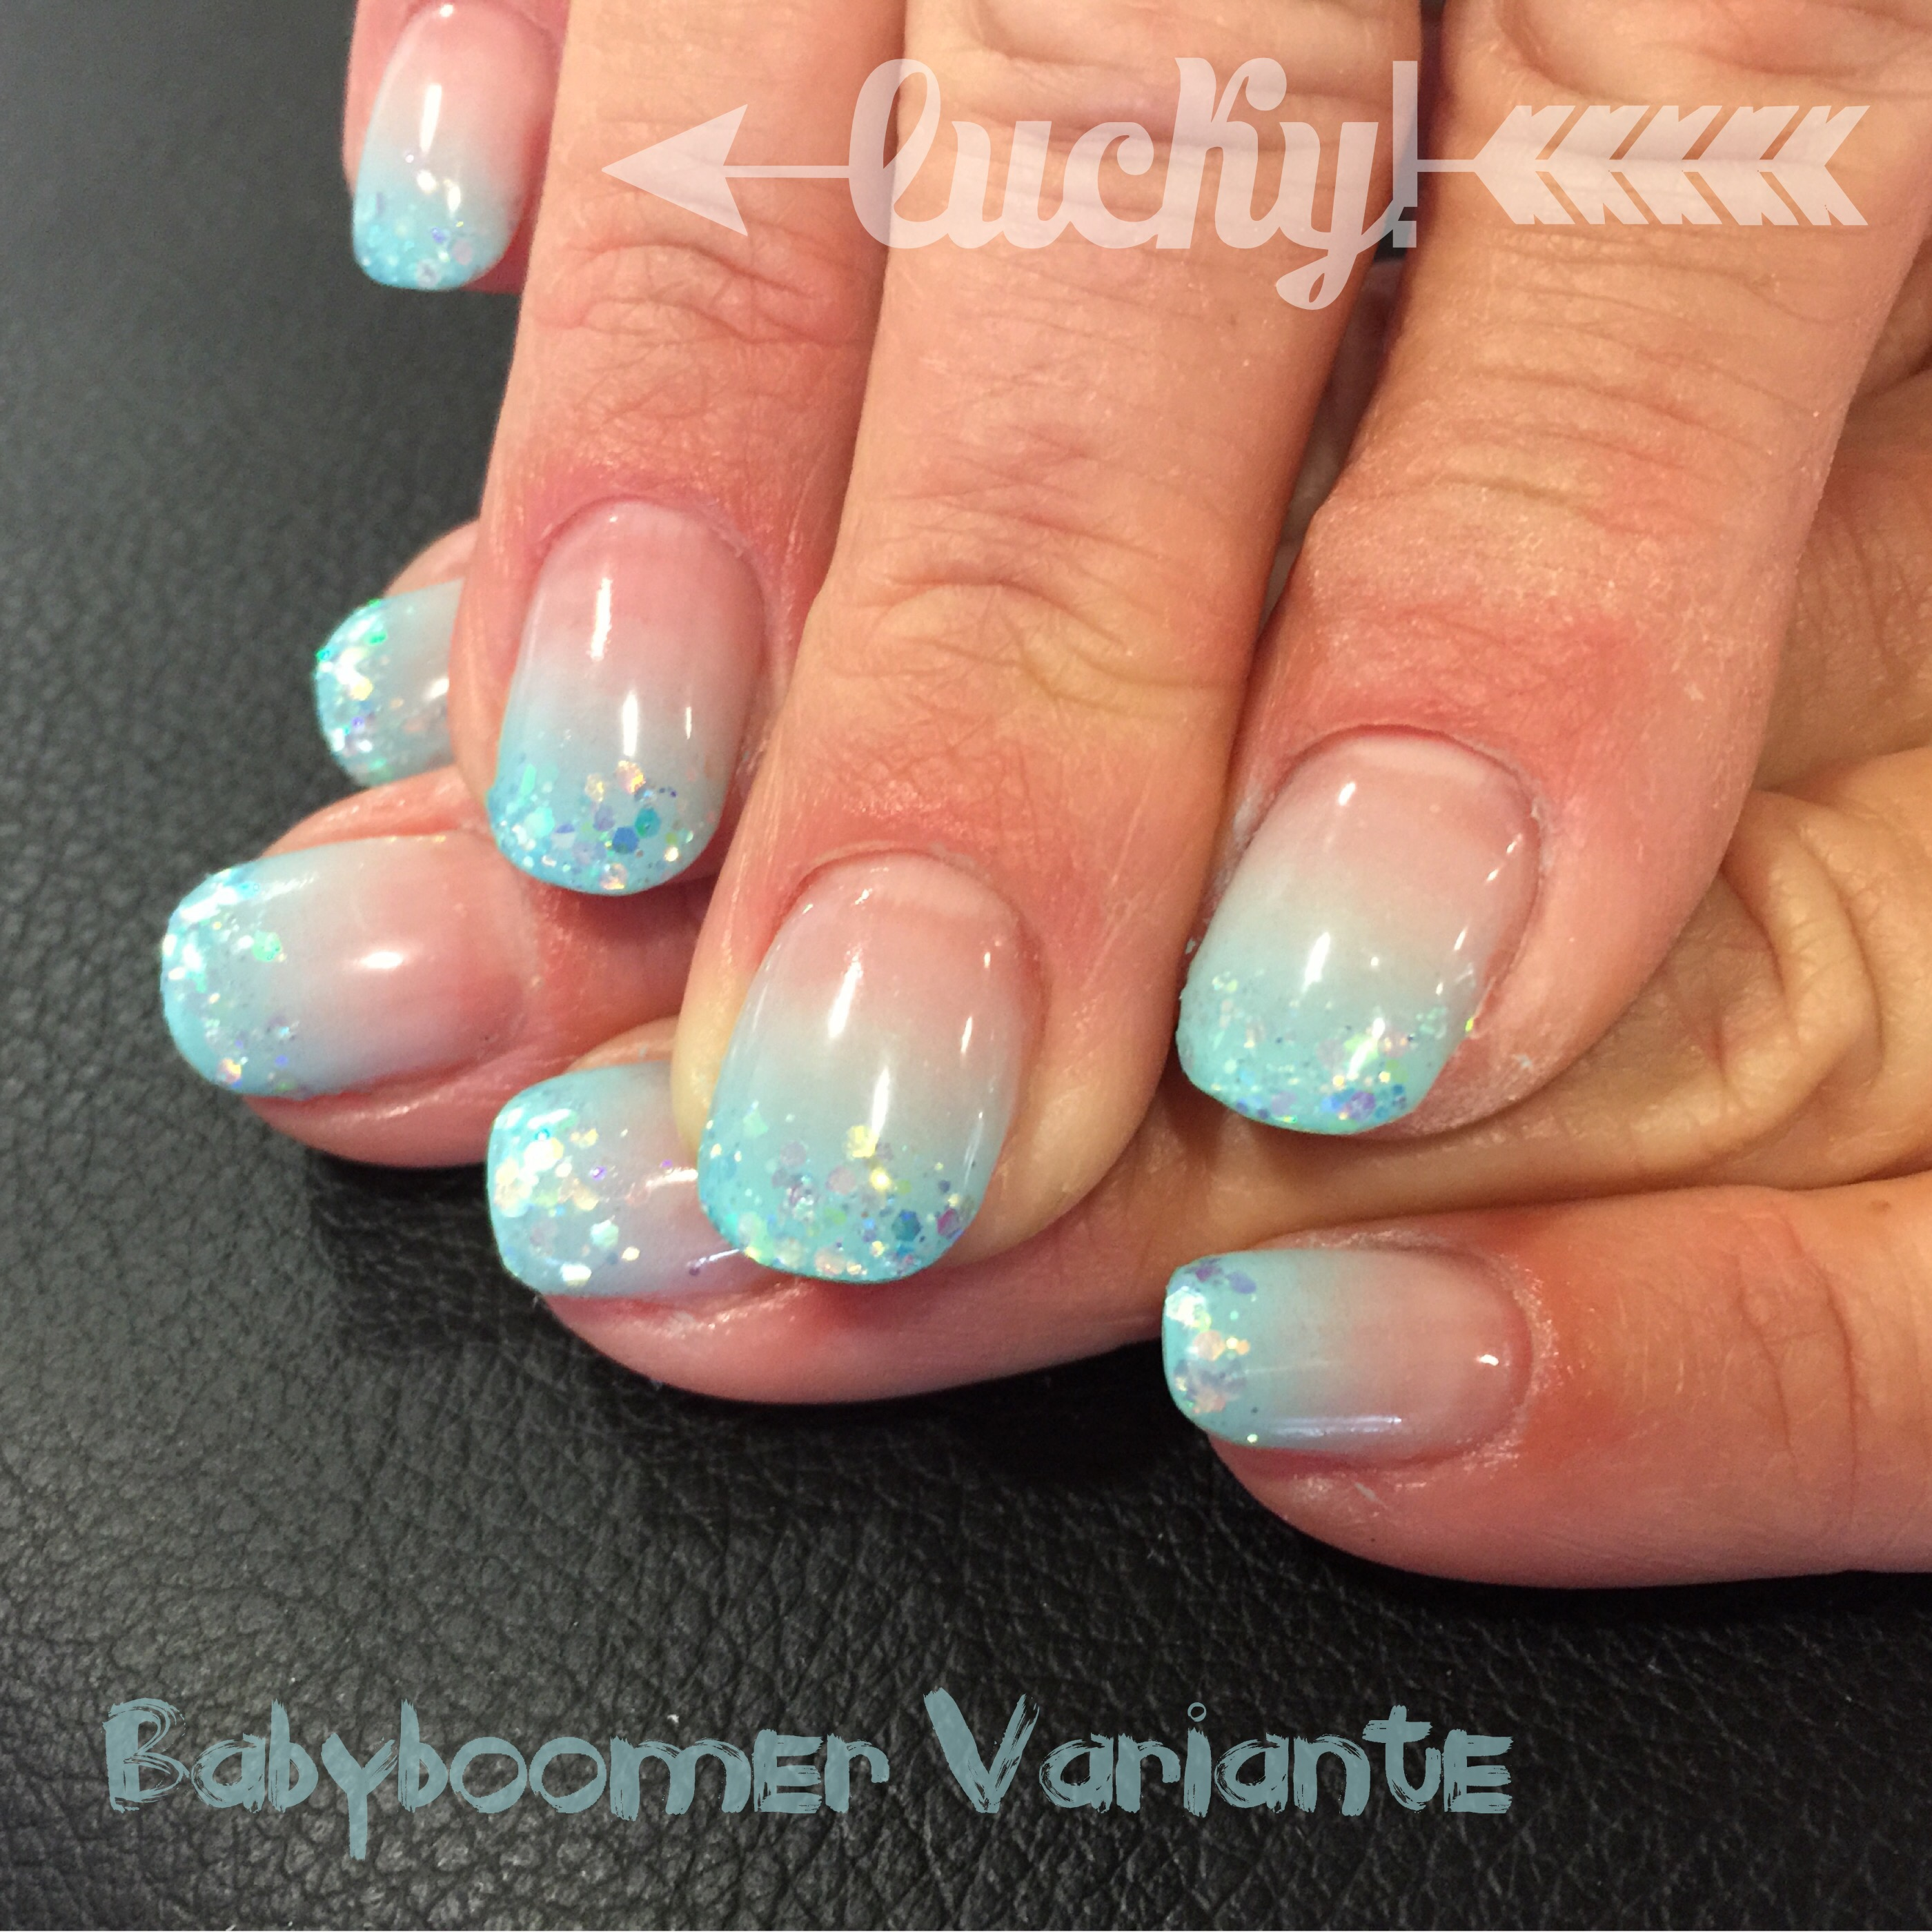 Nageldesign Weiße Spitze Galerie Group Of Nageldesign French Bilder Sommer